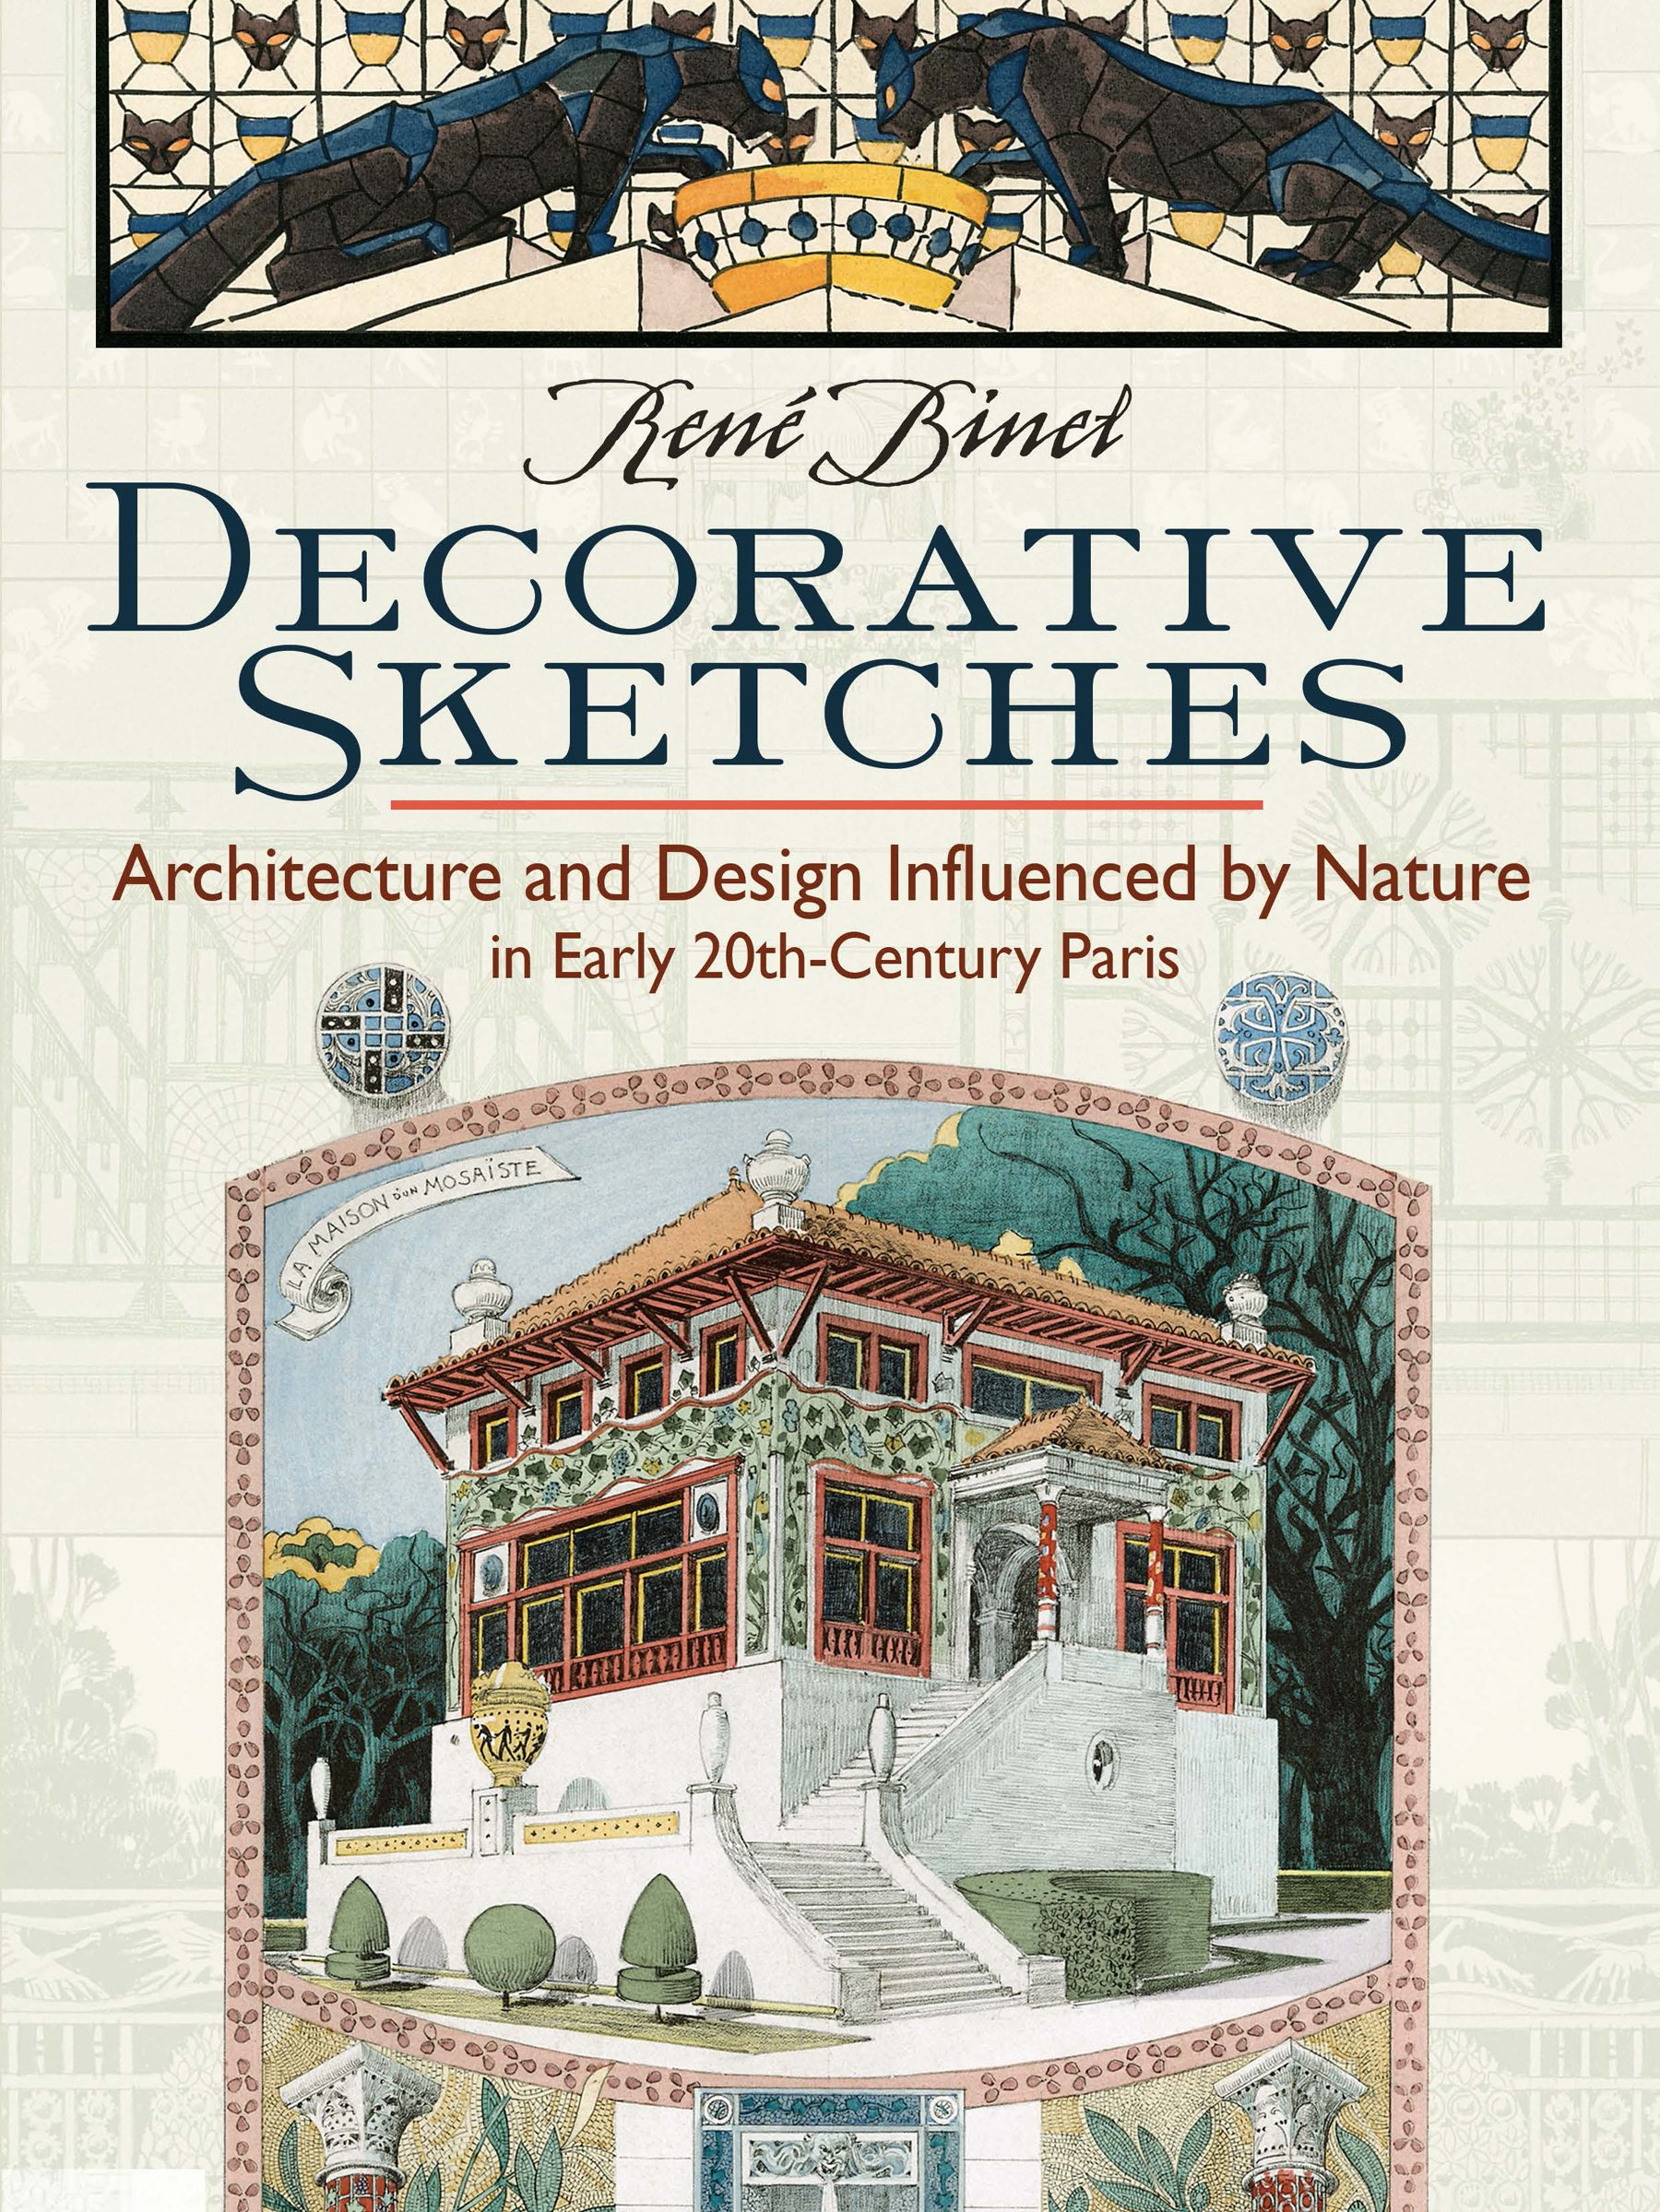 Decorative Sketches: Architecture and Design Influenced by Nature in Early 20th-Century Paris pdf